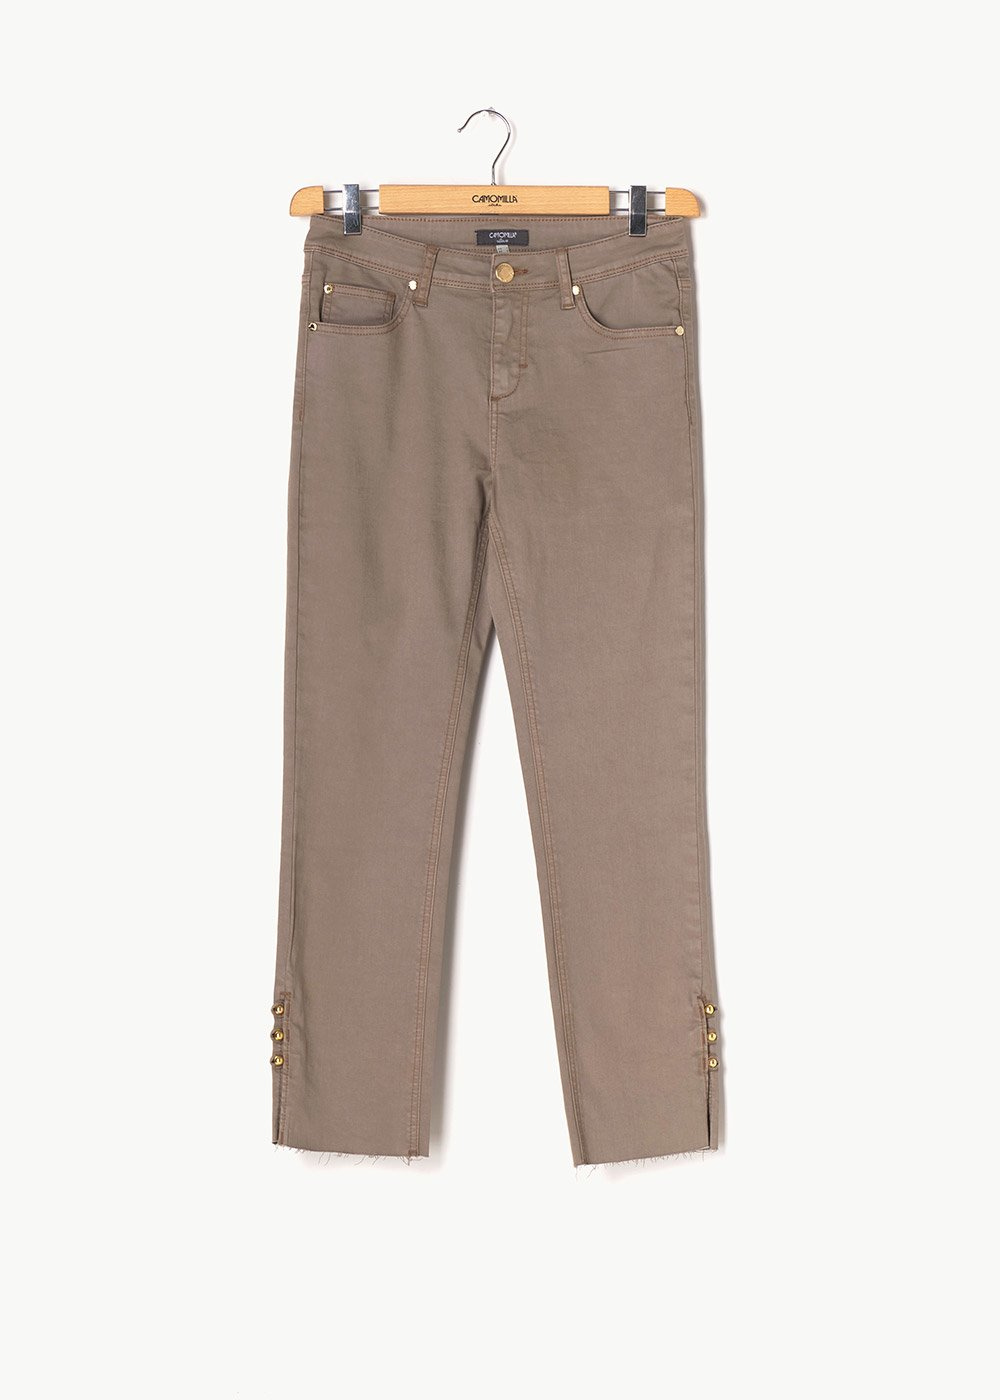 Piero capri pants with details at the bottom - Beige - Woman